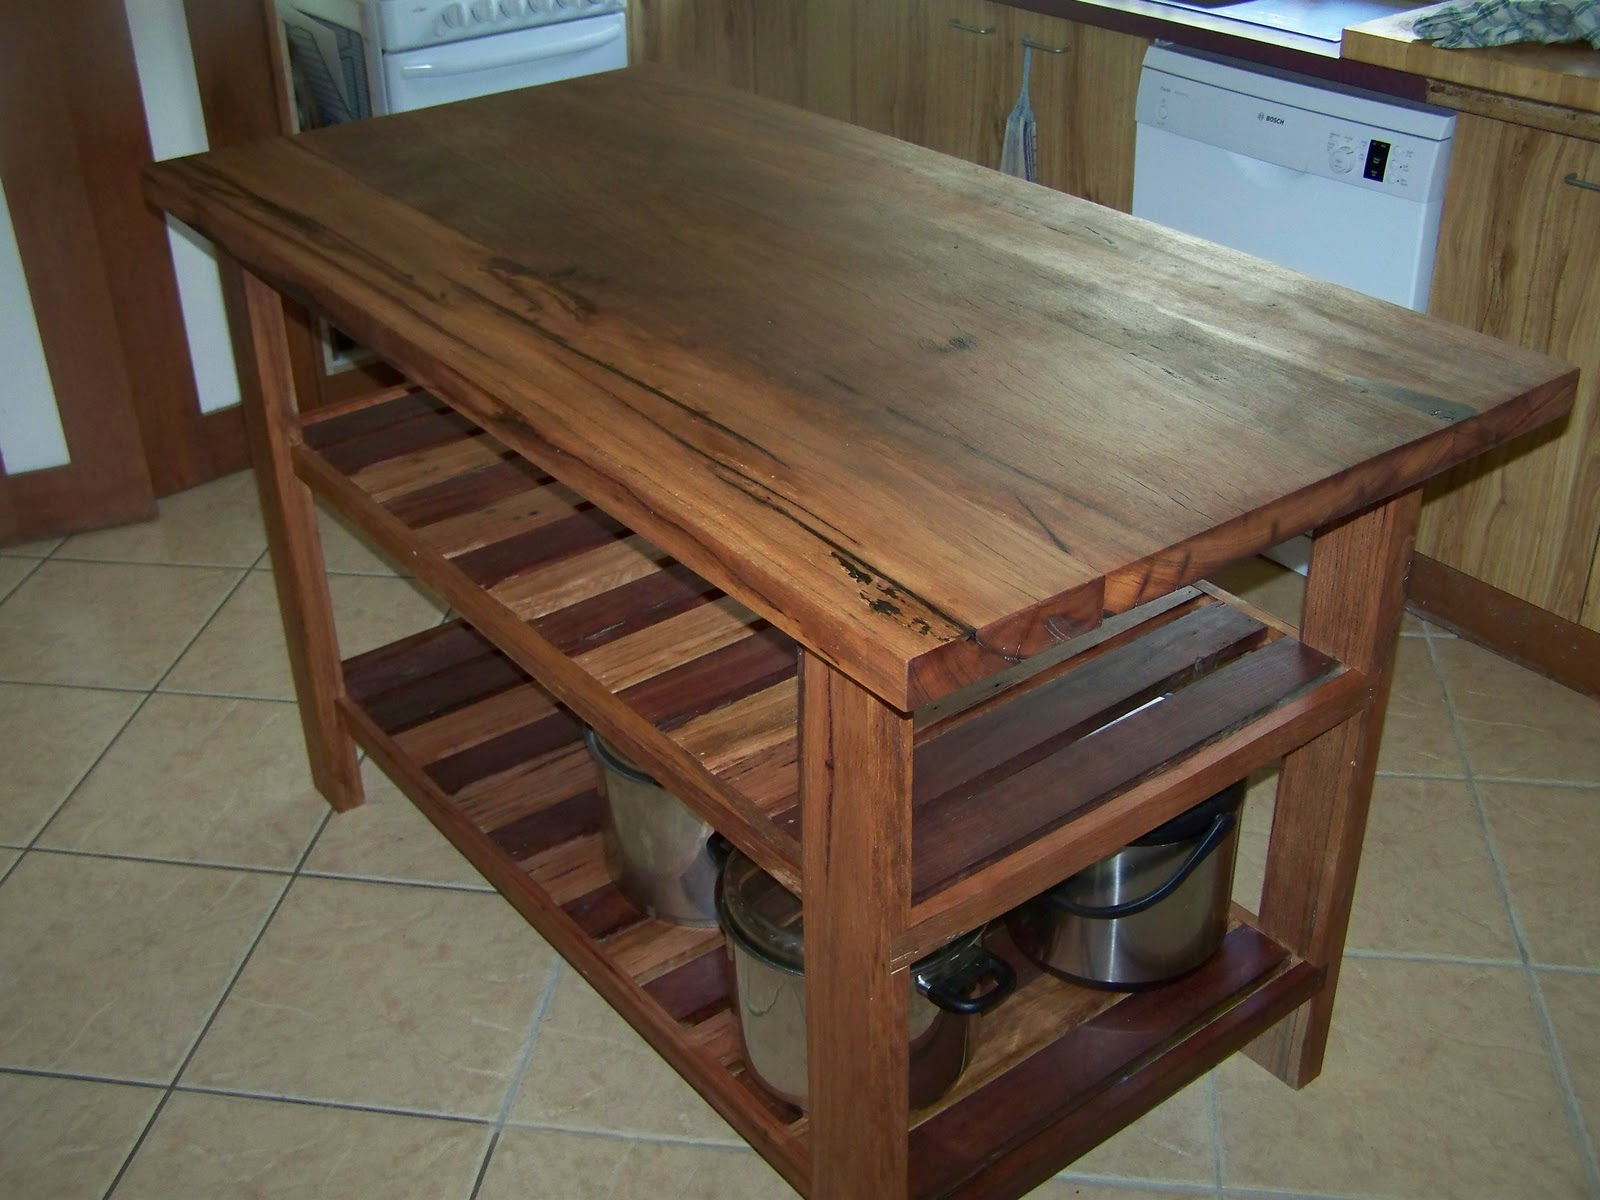 Kitchen Island With Bench Secret Hippie: New Kitchen Island Bench